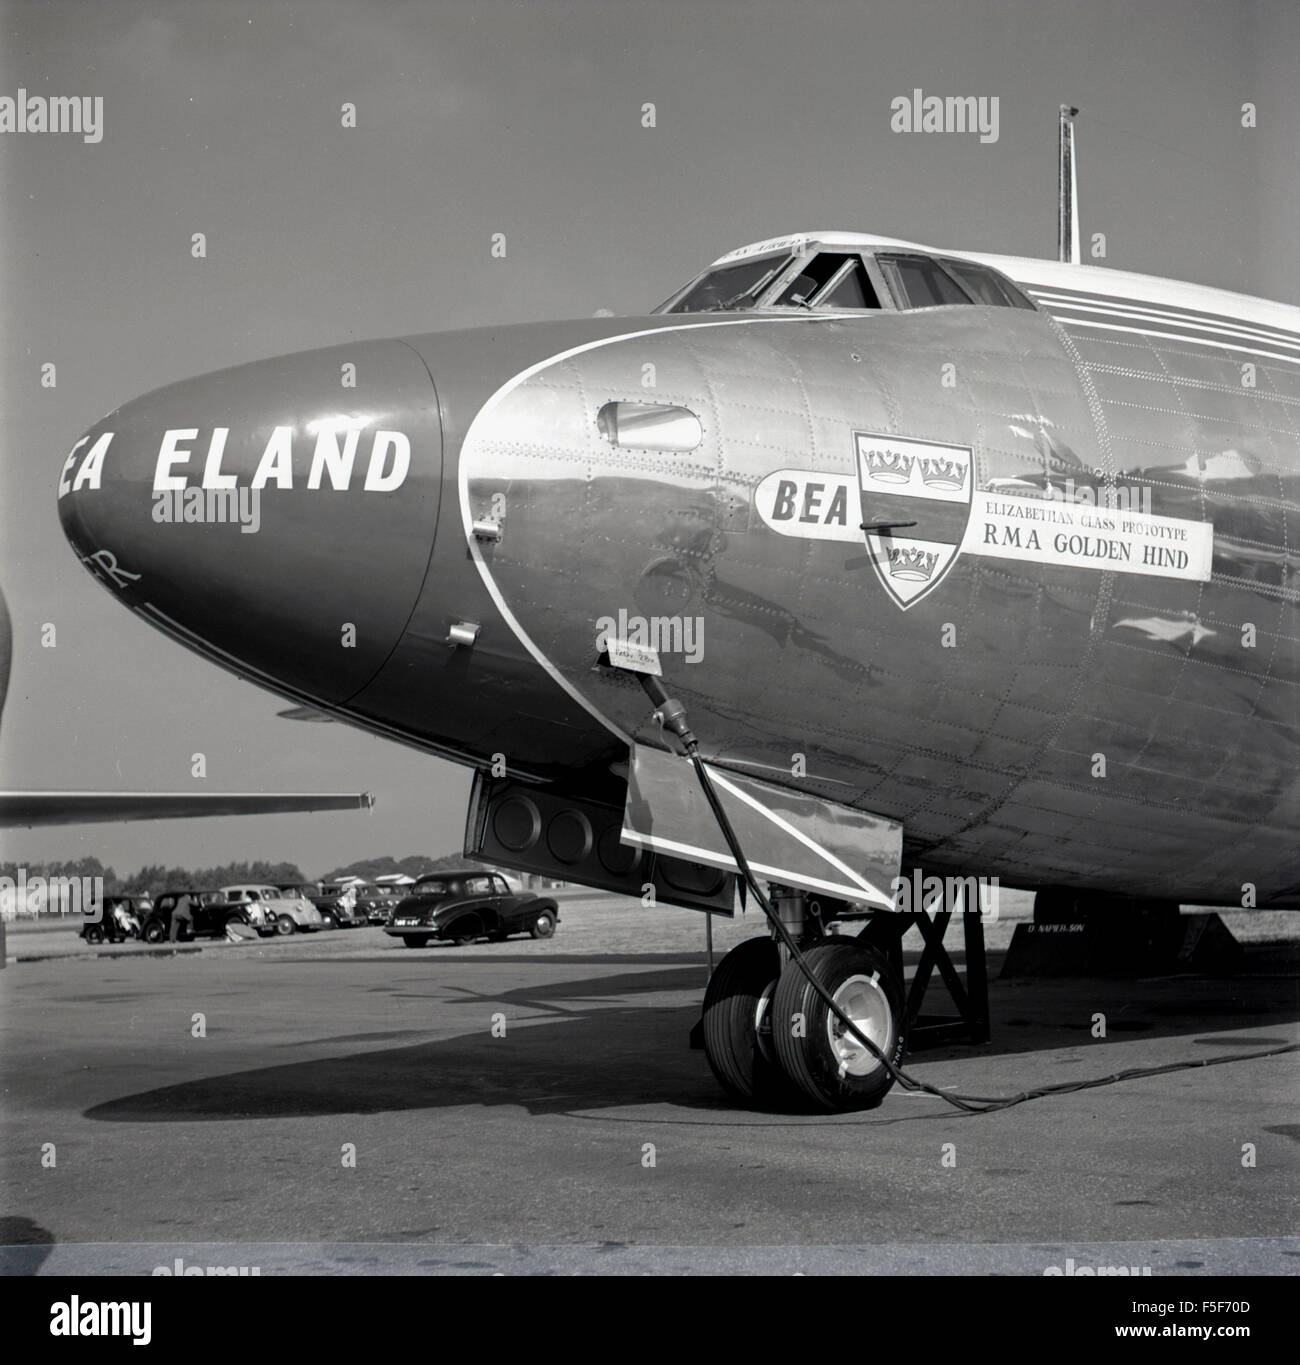 1955, historical picture showing the front and cockpit of the BEA RMA Golden Hind aircraft. This was a Elizabethan - Stock Image